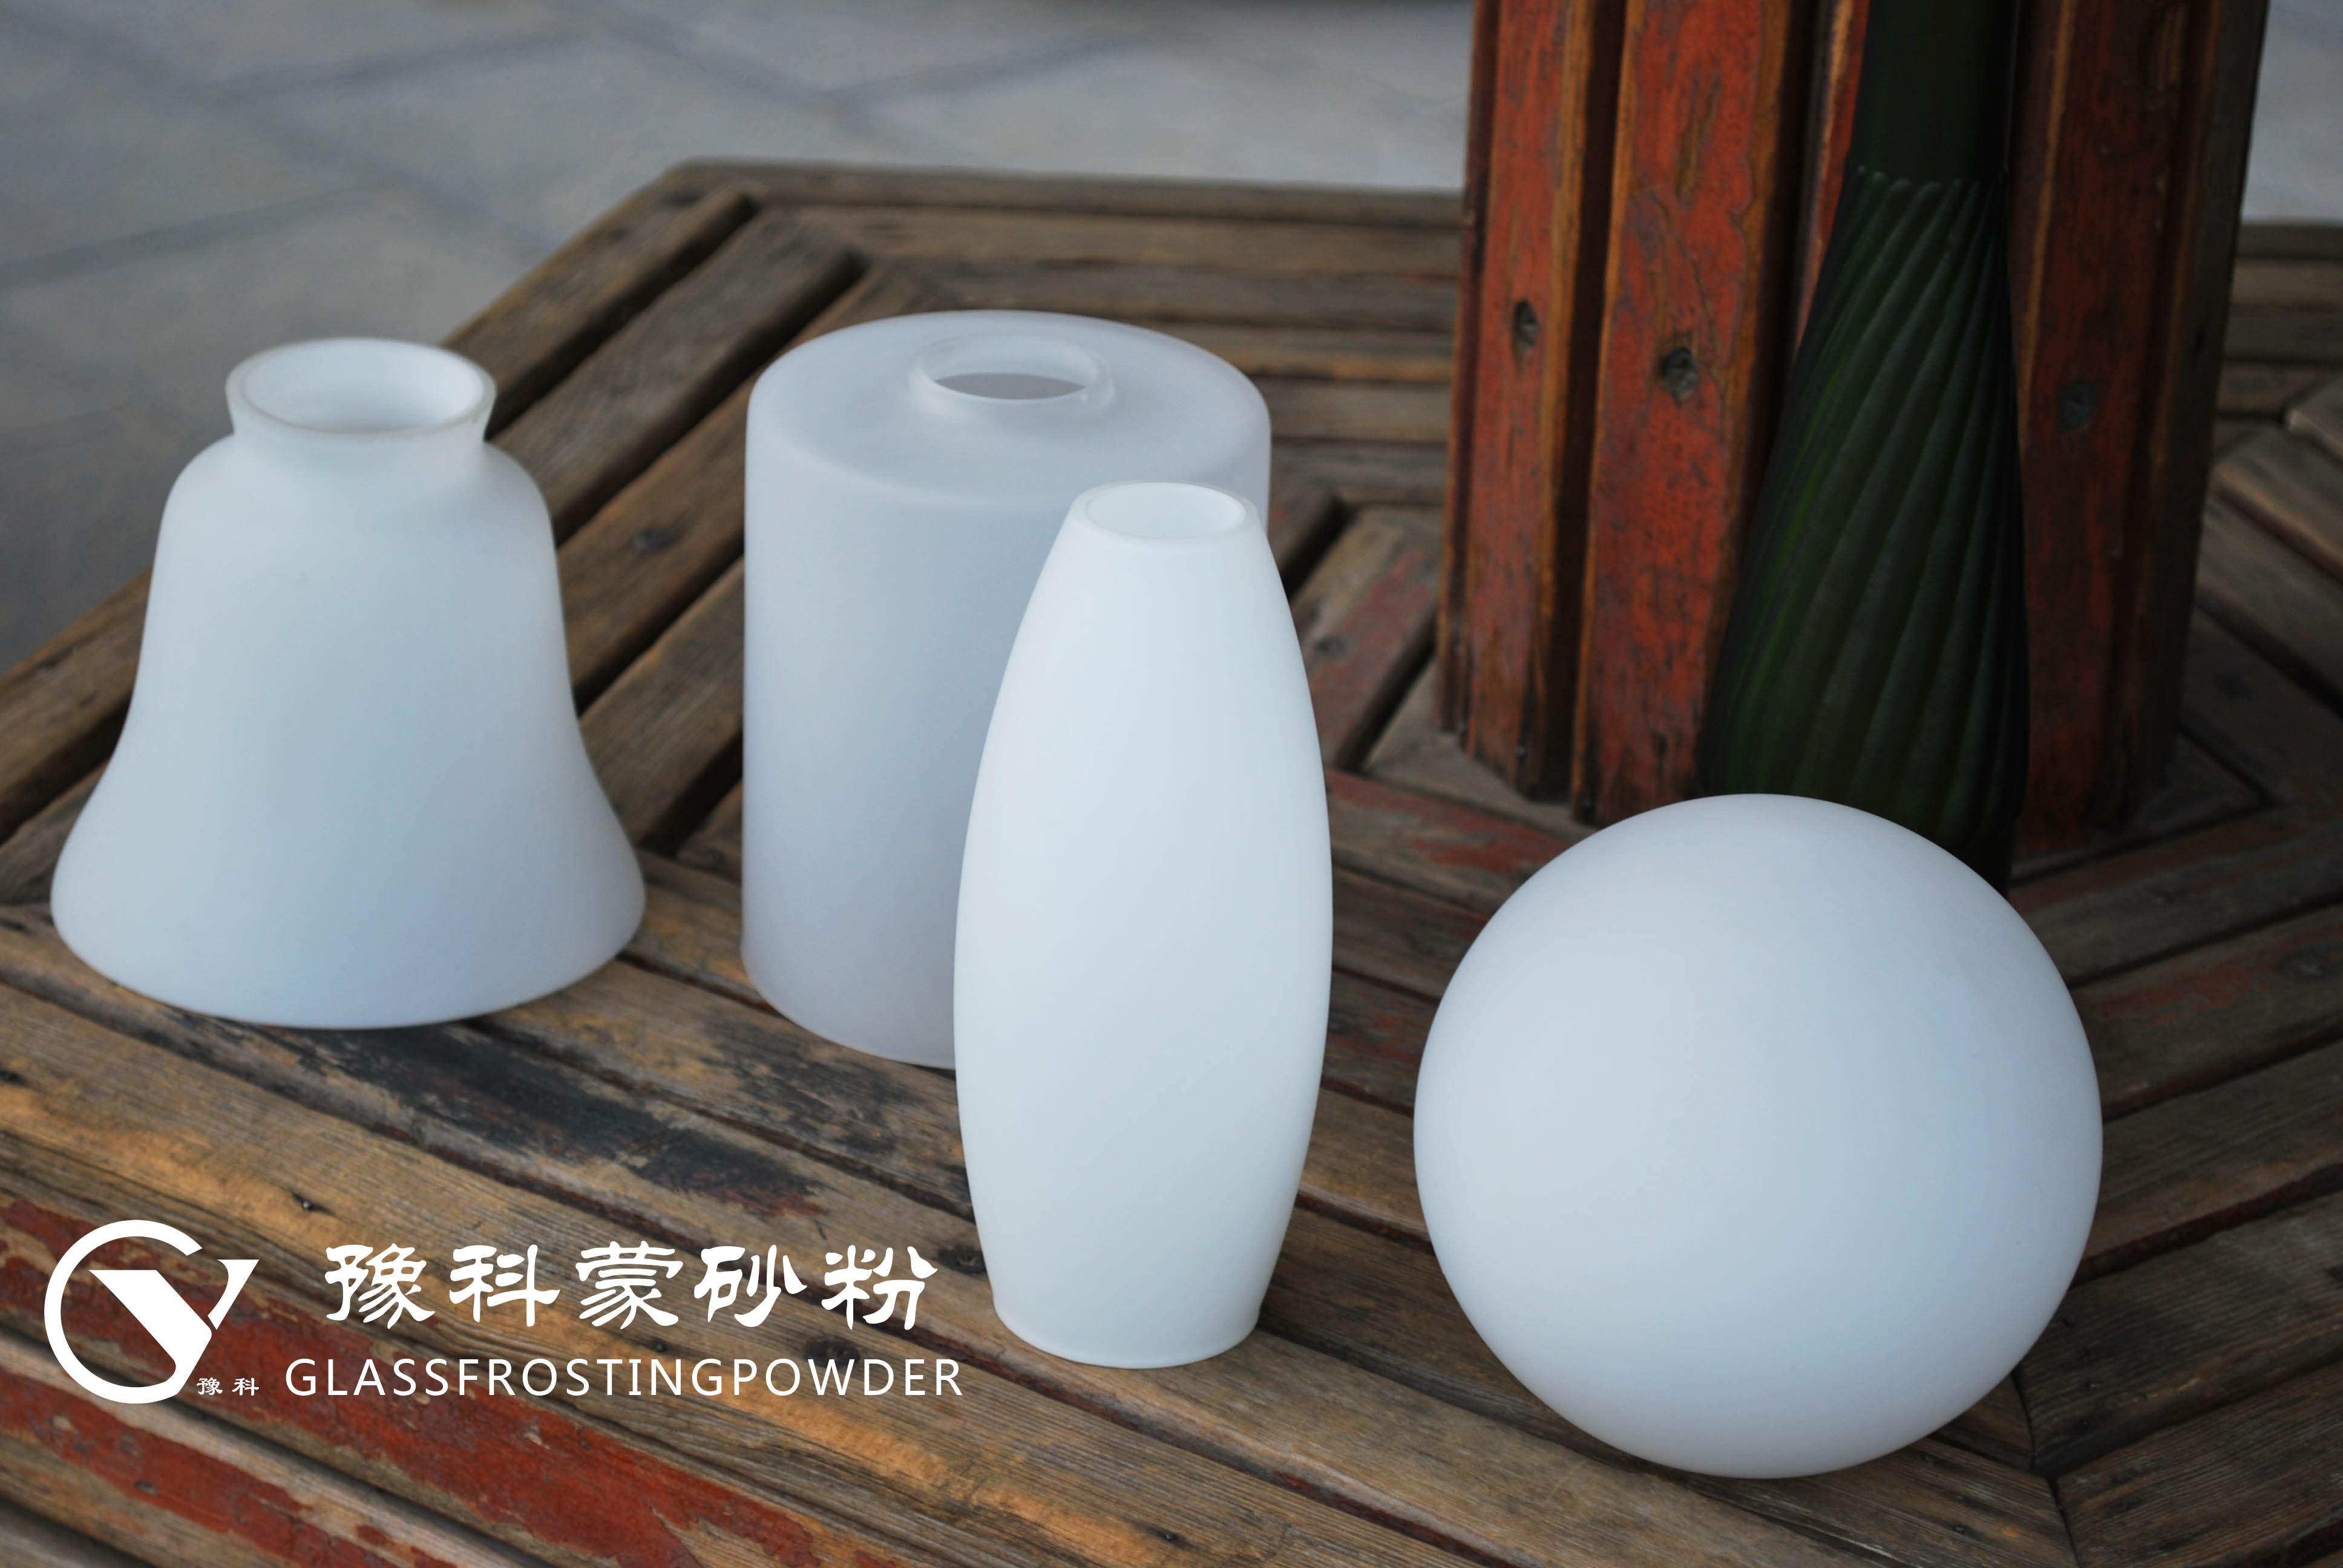 Lamp and lighting glass frosting powder